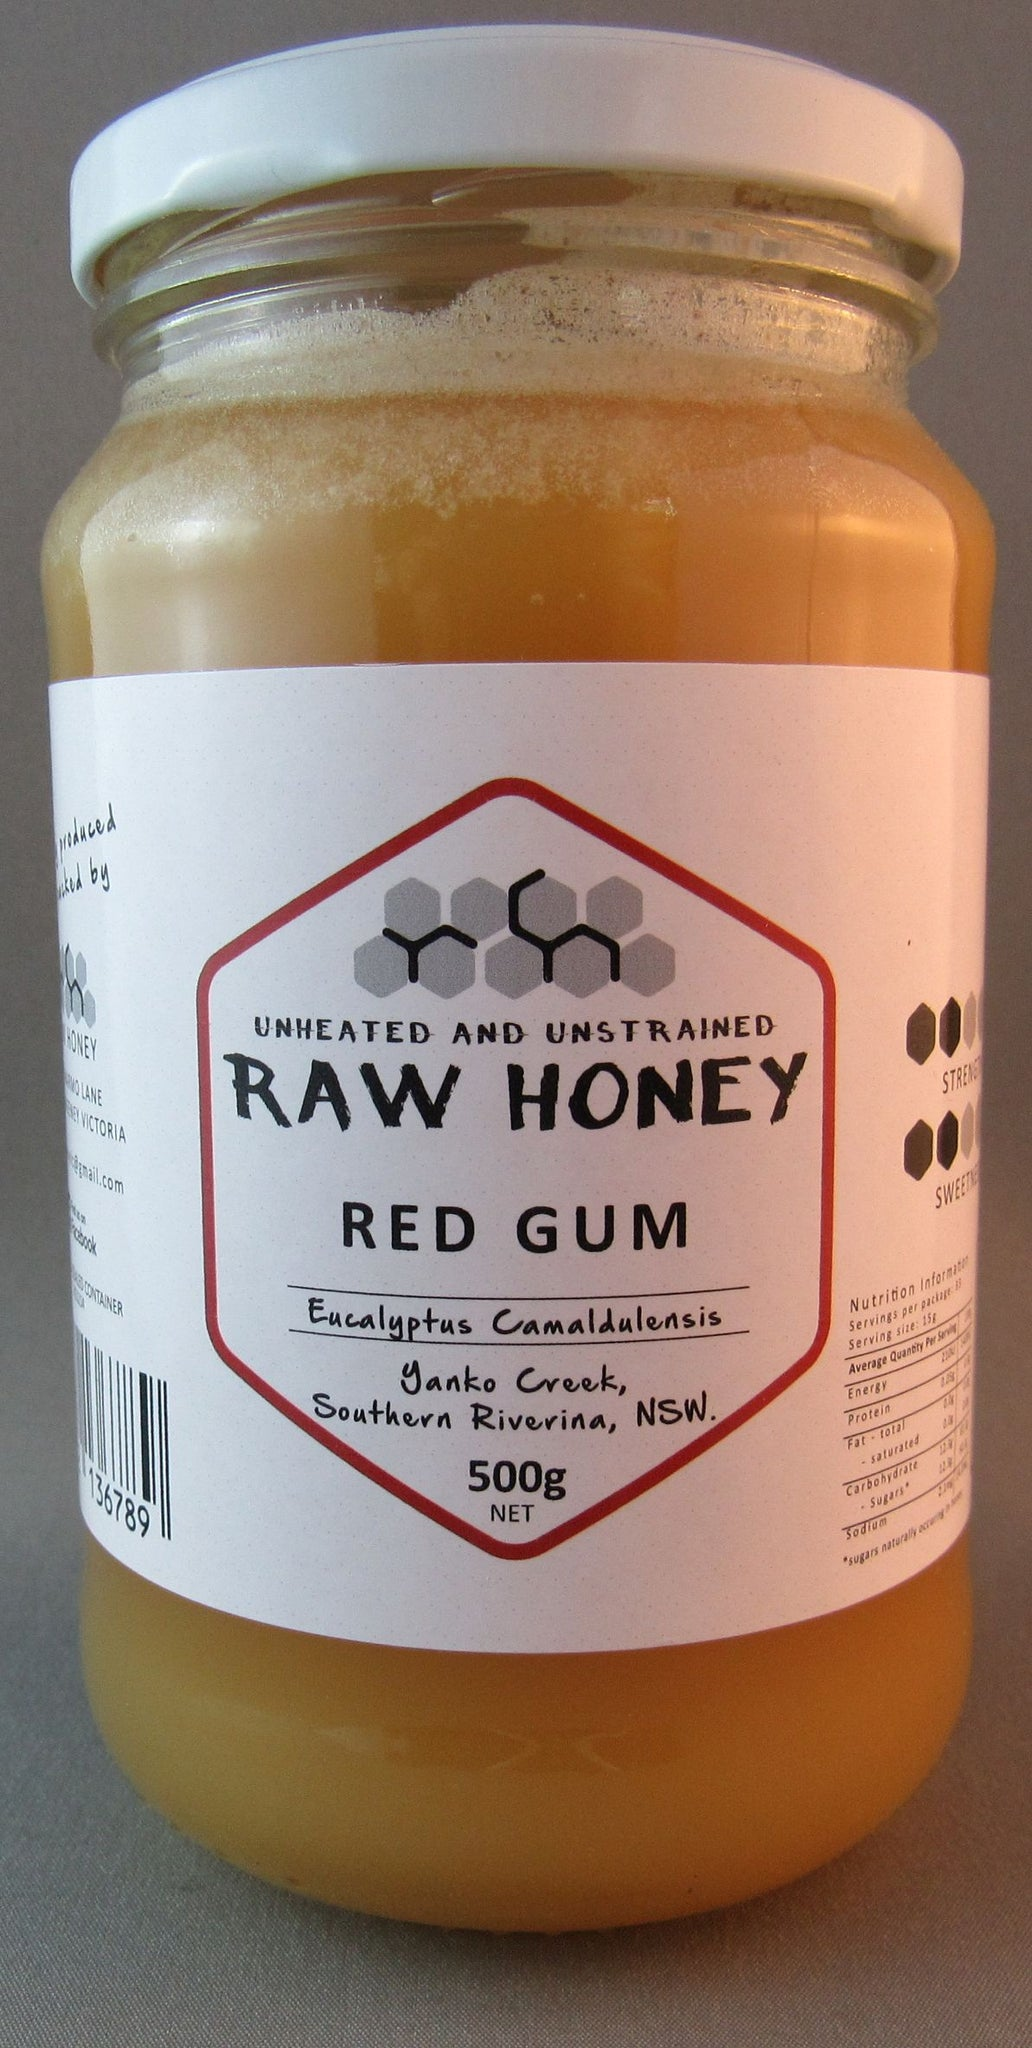 Redgum, raw honey, 500gms